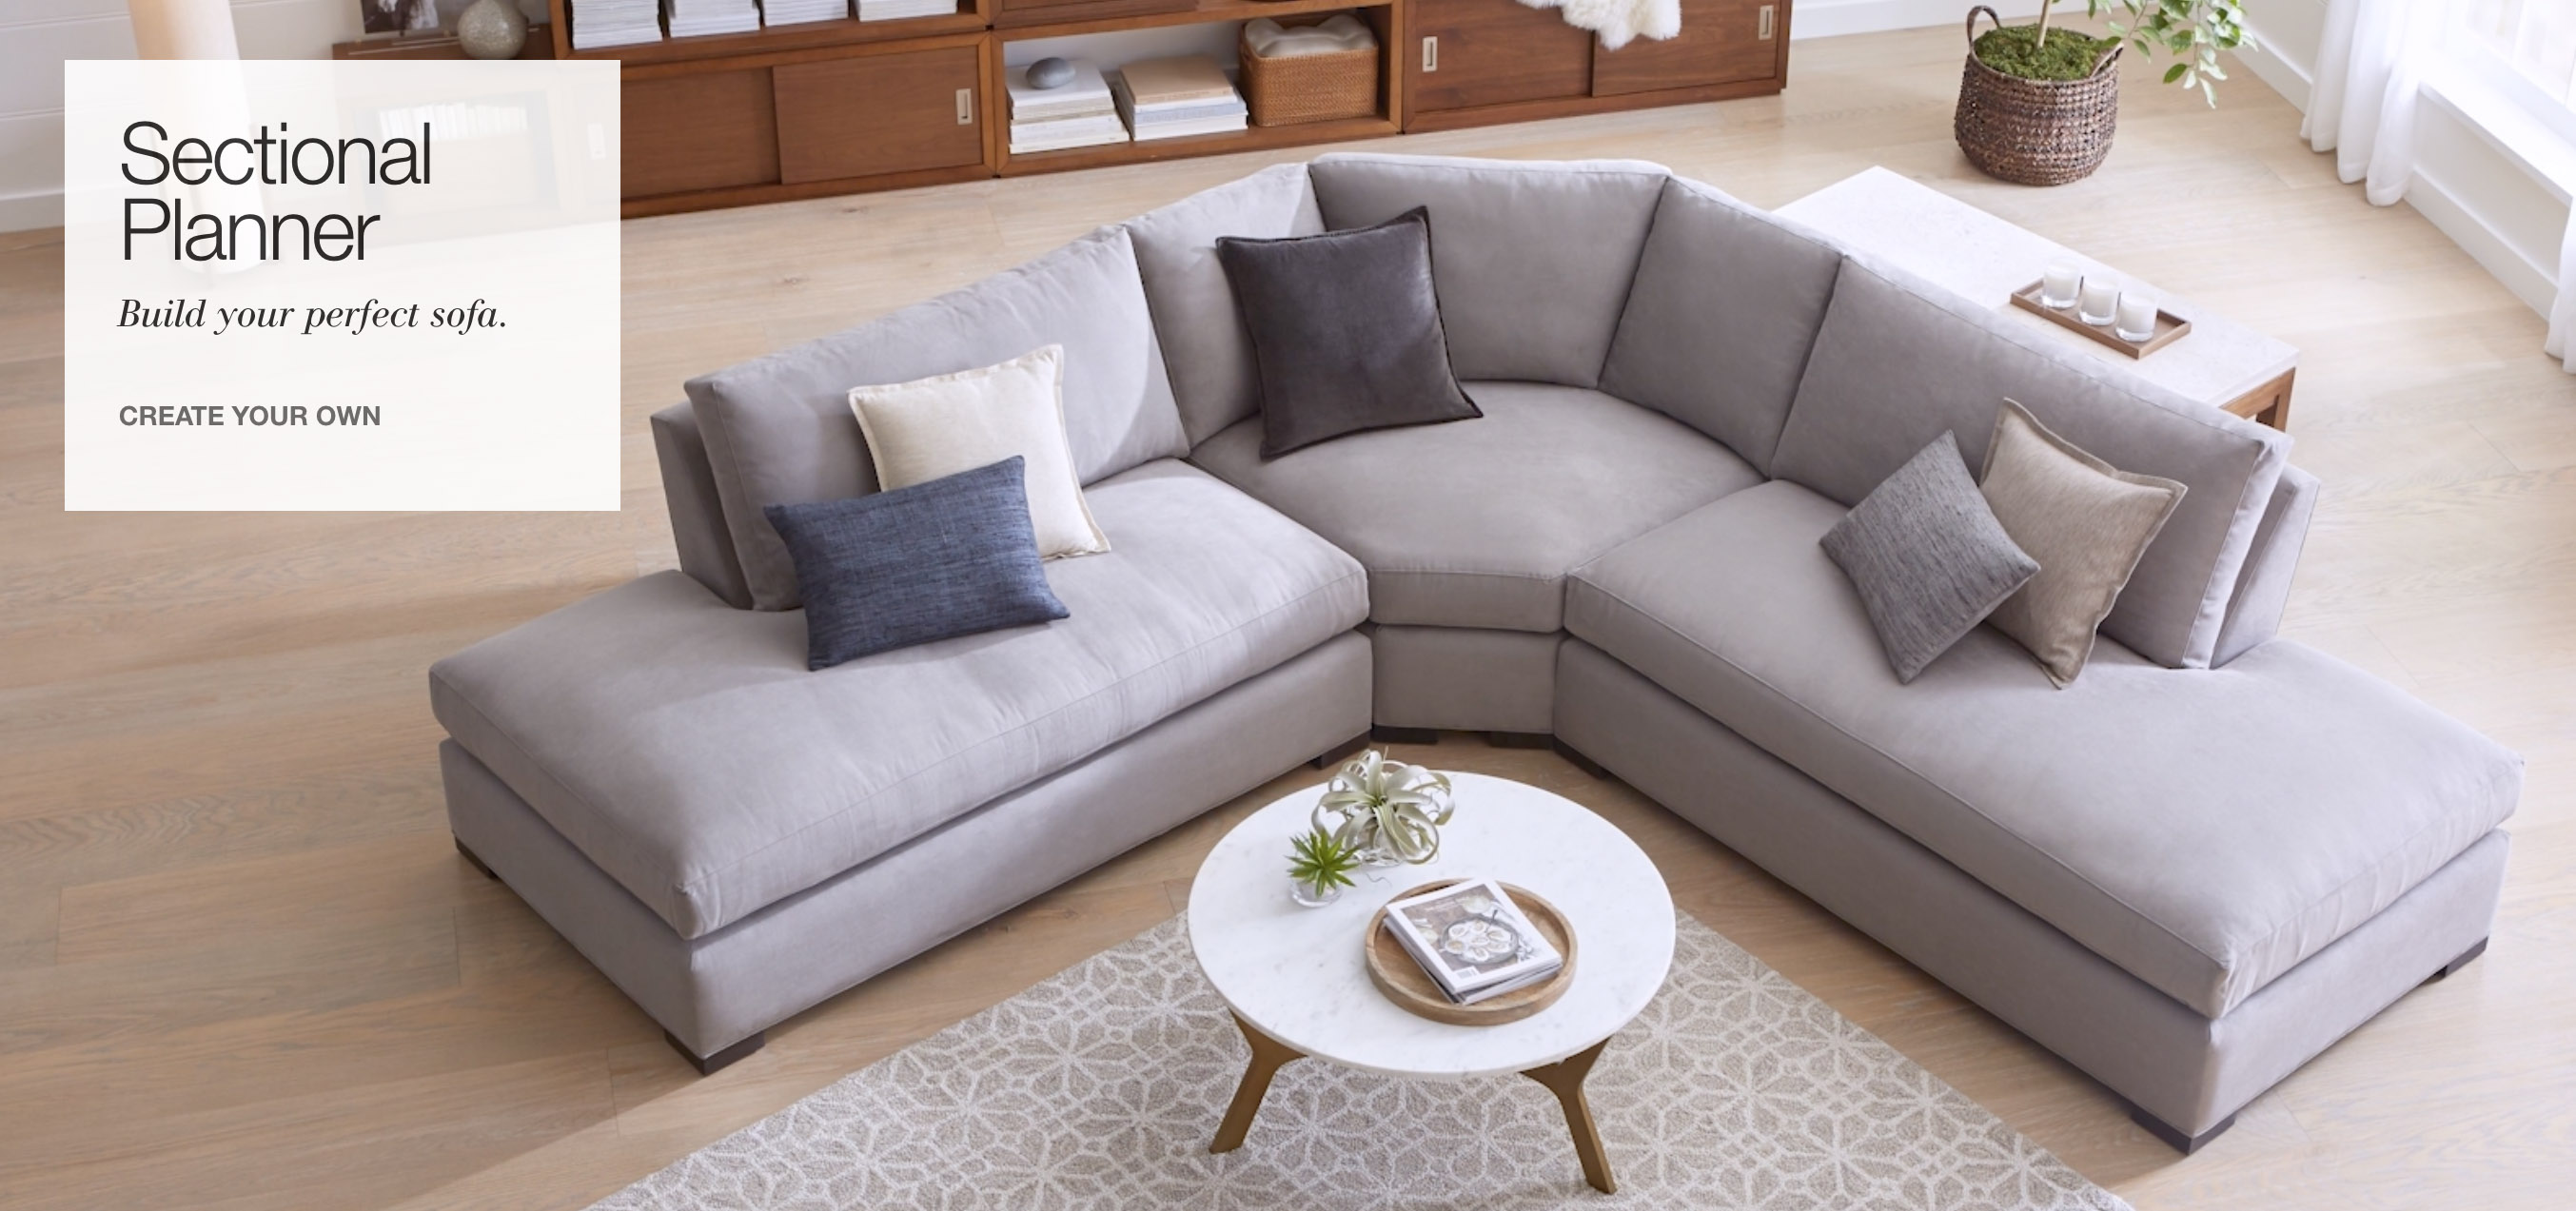 Introducing the sectional planner build the perfect sectional sofa